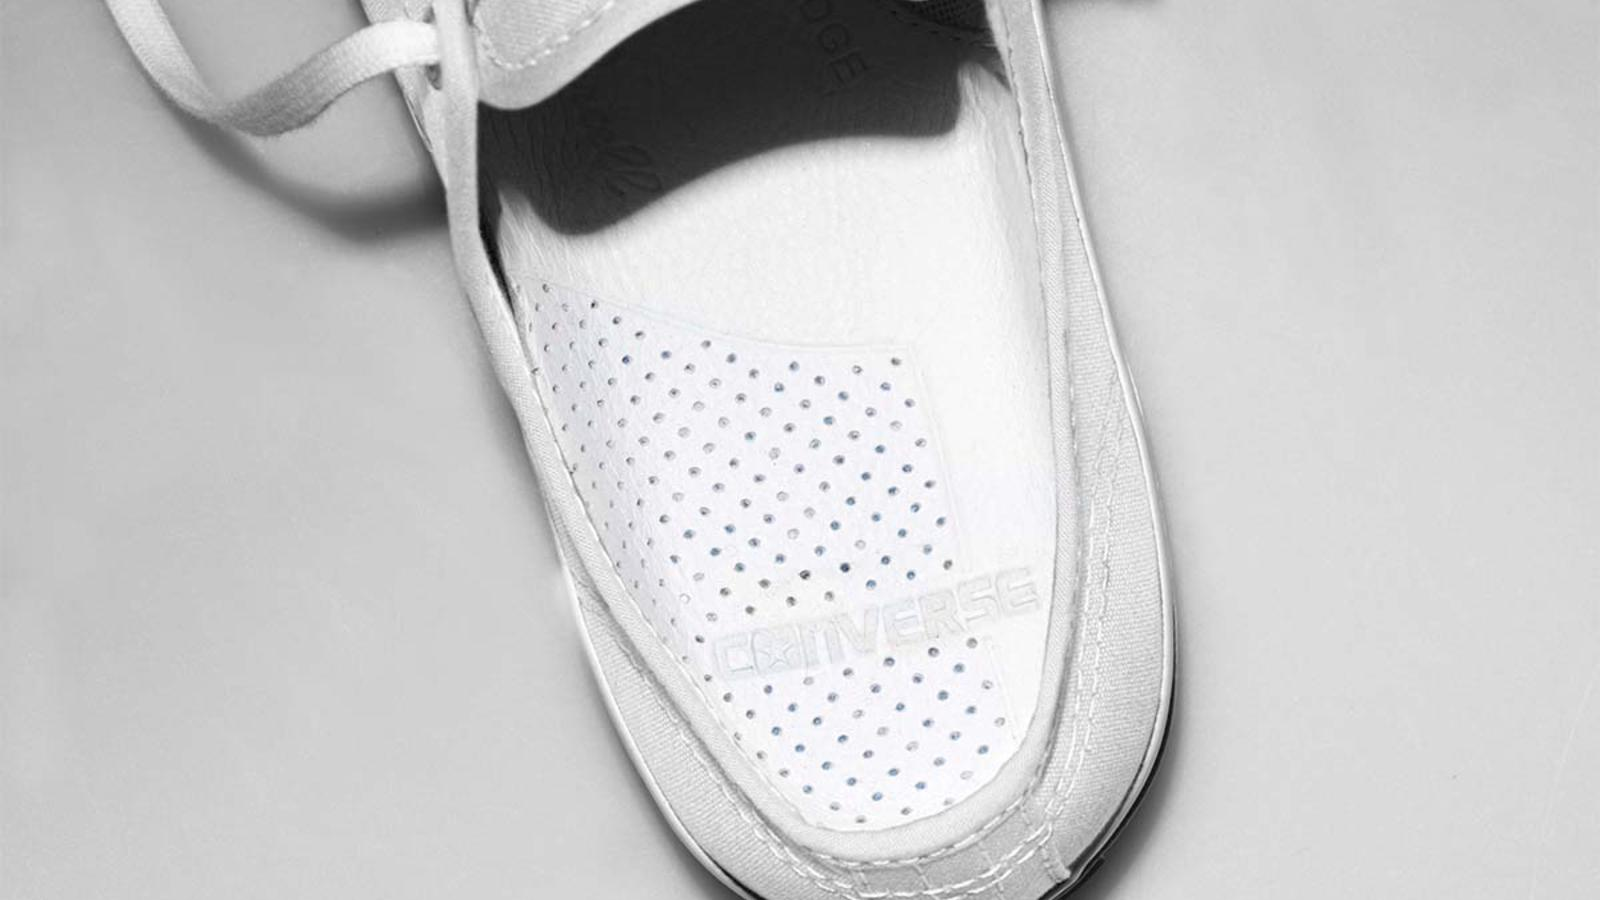 caliroots com Jack Purcell S Series Sneaker Boot Source · CONVERSE DEBUTS  THE JACK PURCELL SIGNATURE SNEAKER Nike News e1b000878